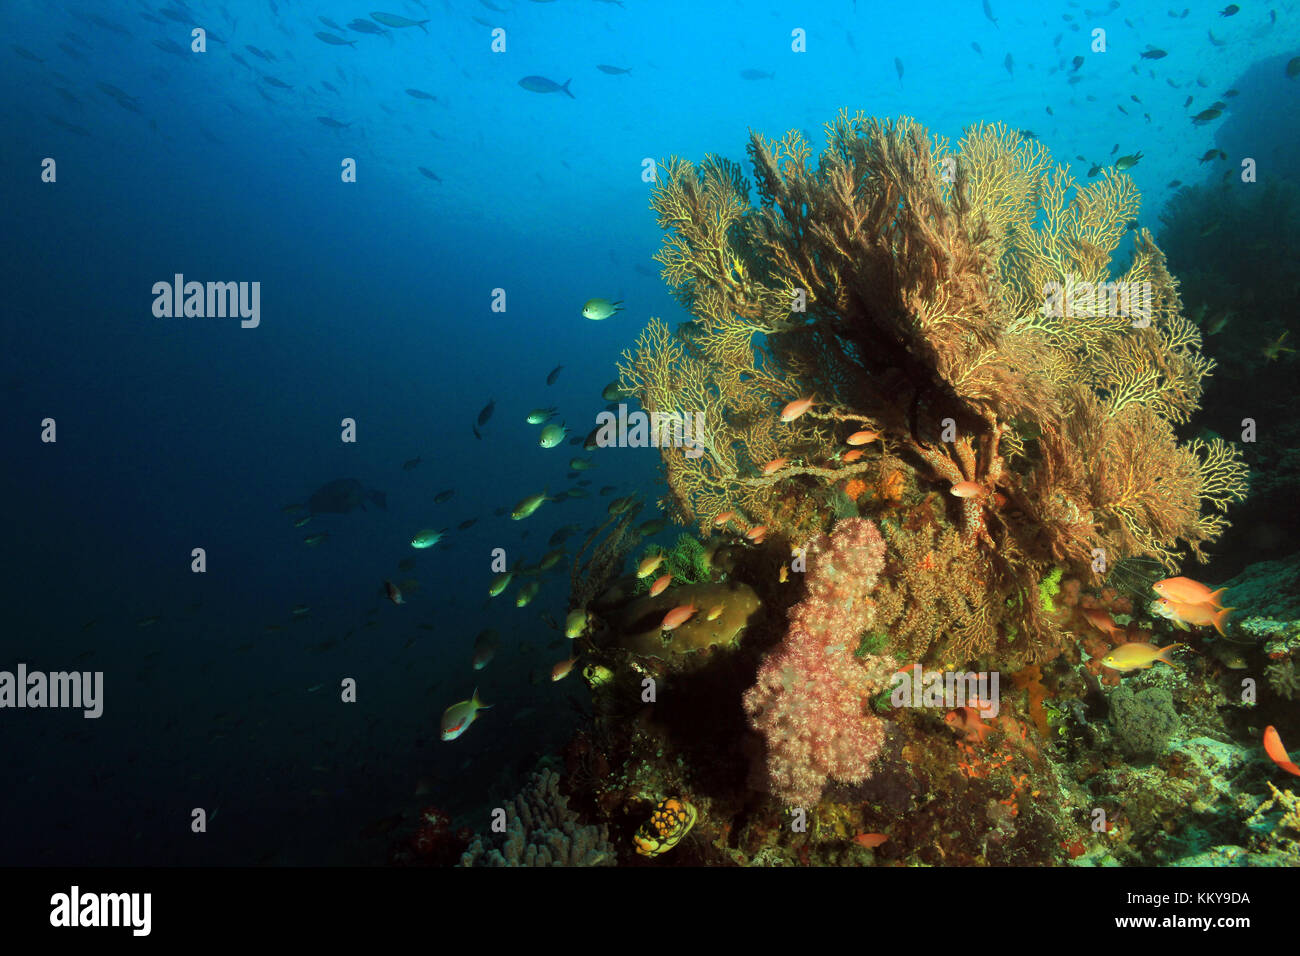 Colorful Coral Reef against Blue Water. Fam, Raja Ampat, Indonesia - Stock Image